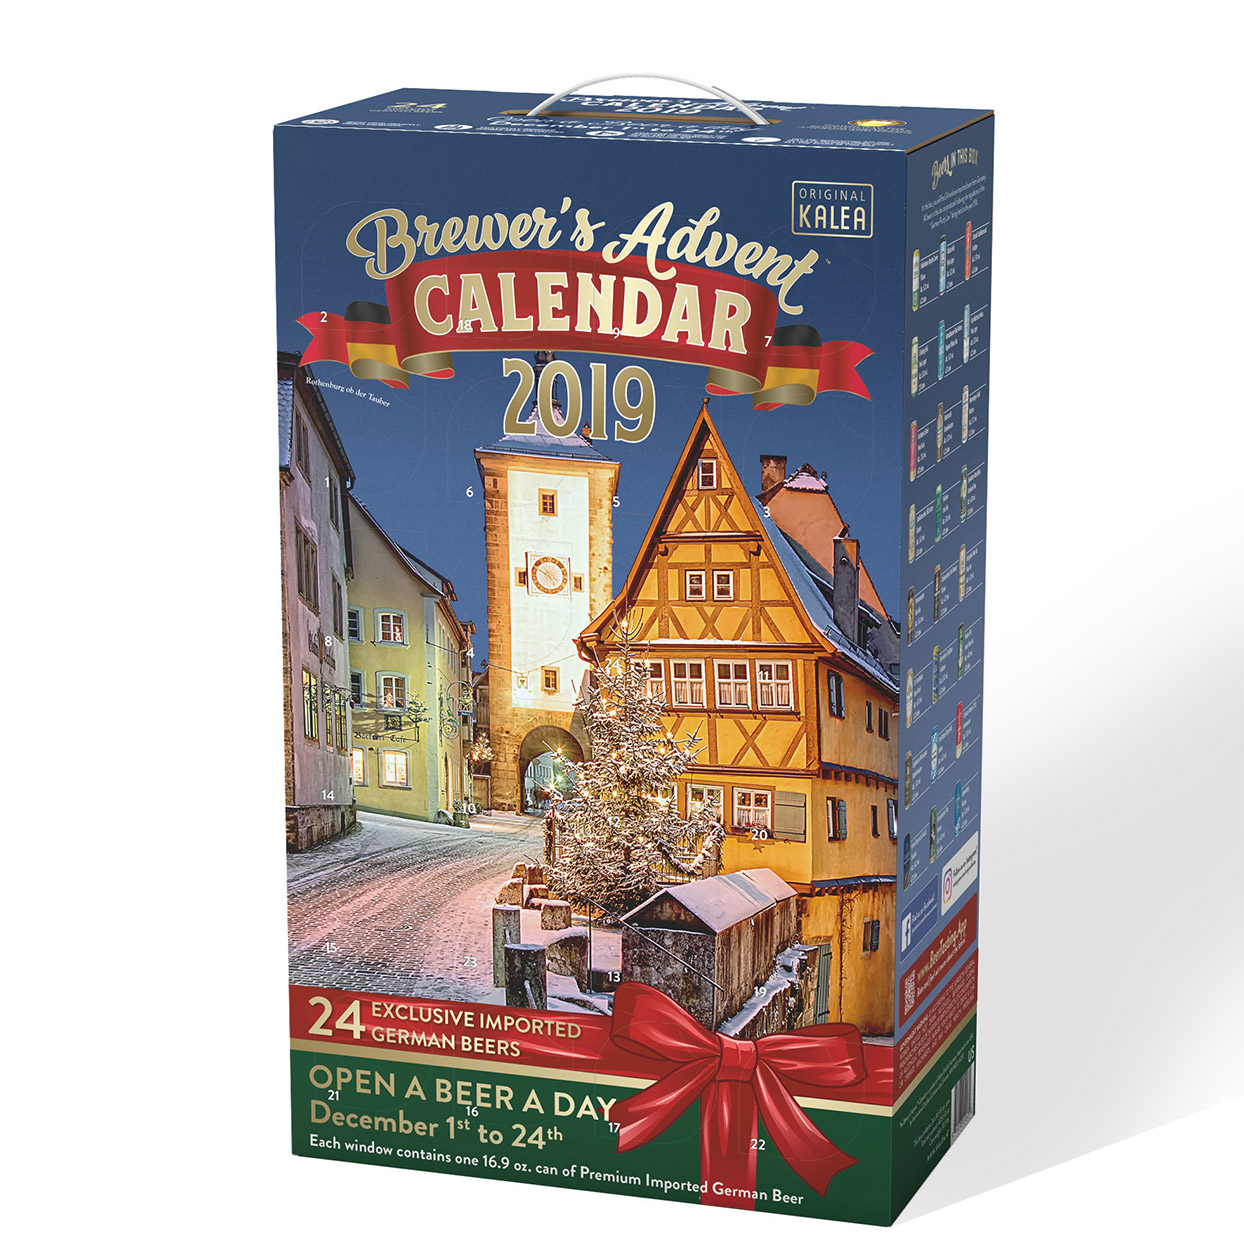 Costco's Beer Advent Calendar Is Back With 24 Nights of German Imports